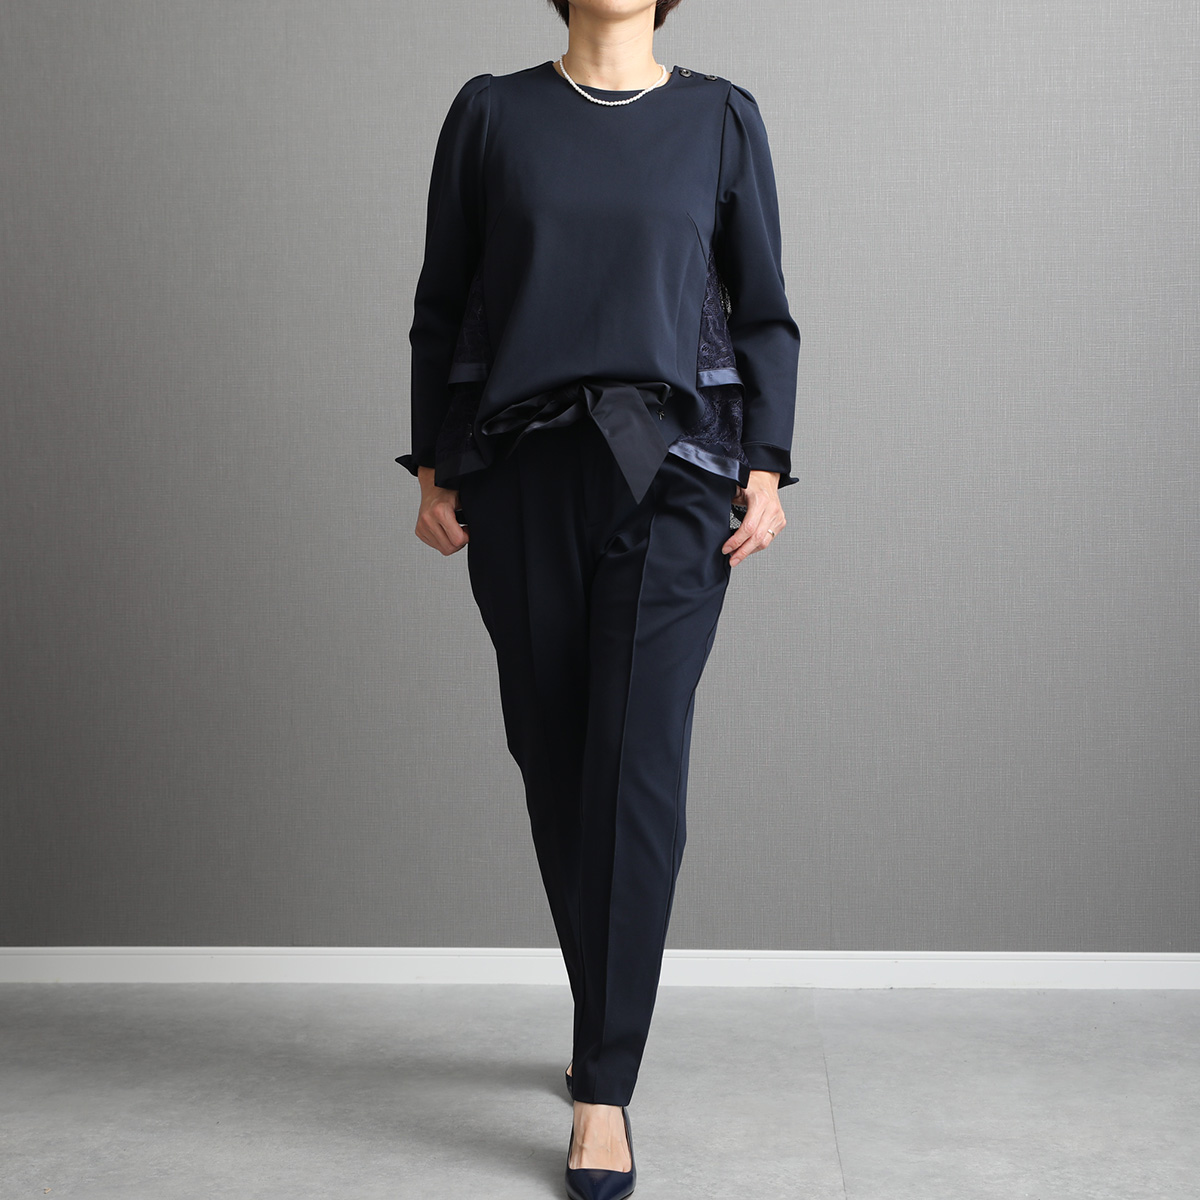 『Dress knit』 tapered Pants NAVY画像